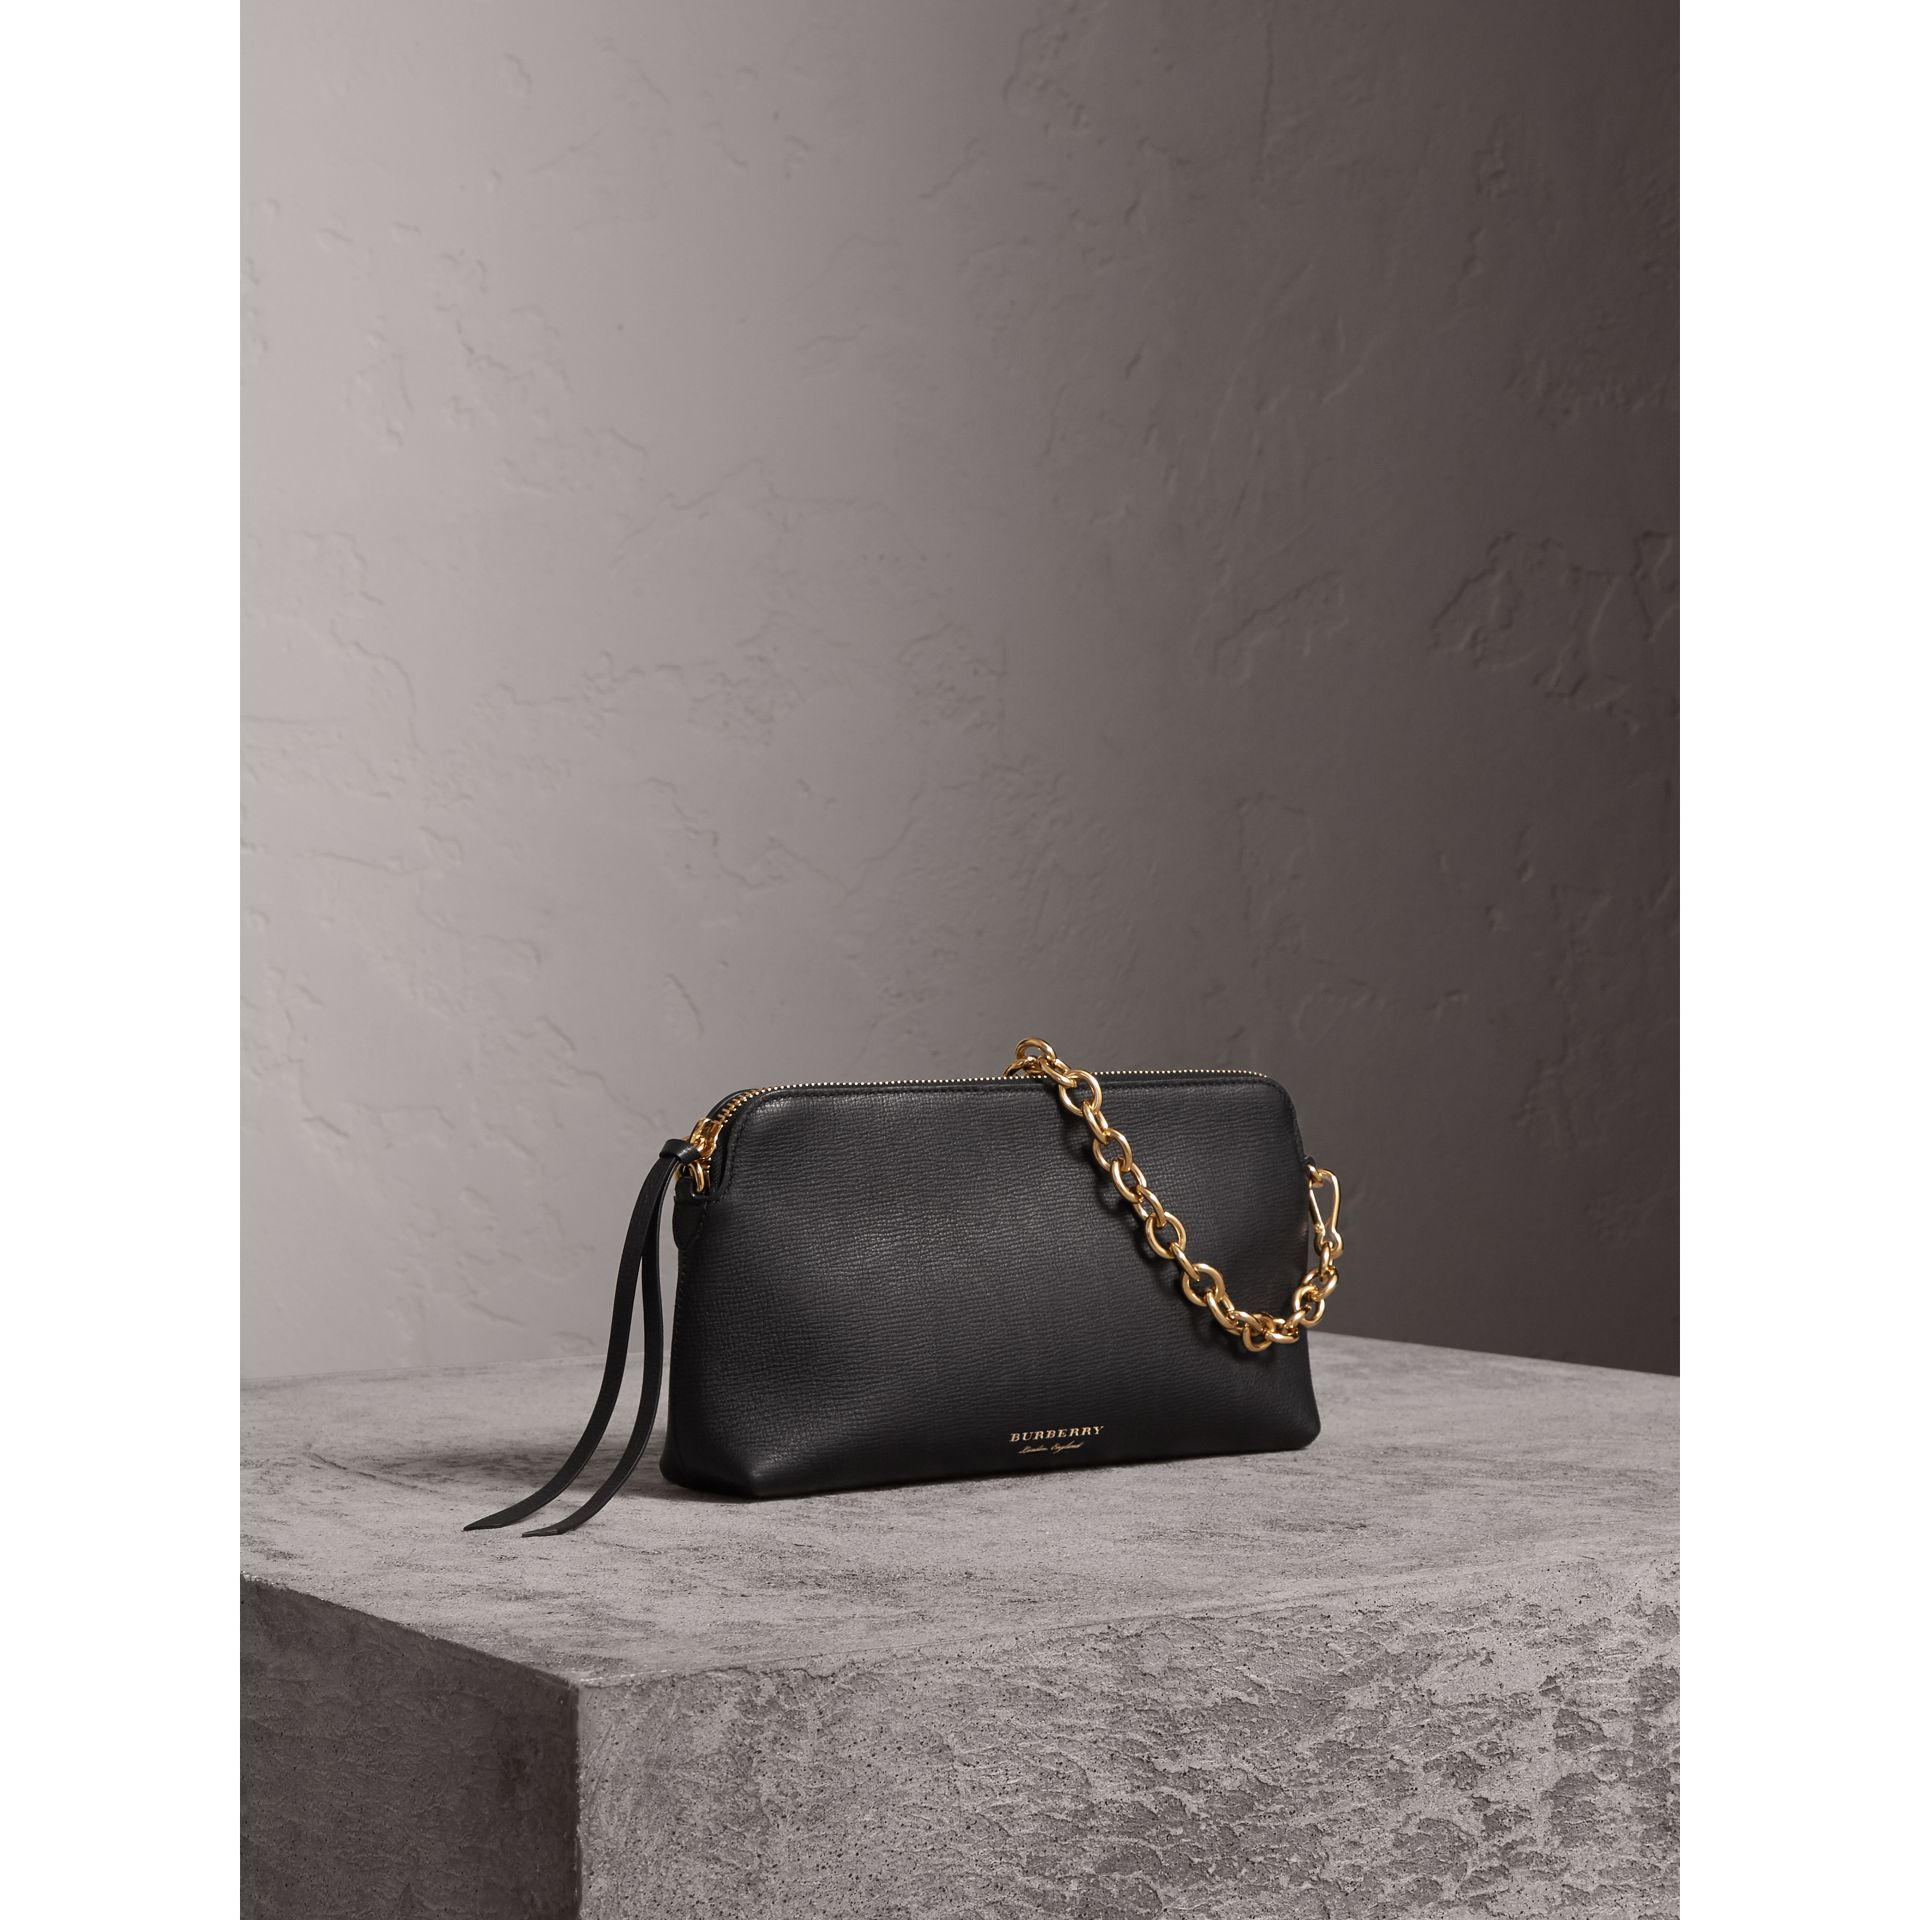 Grainy Leather Clutch Bag in Black - Women | Burberry Canada - gallery image 8